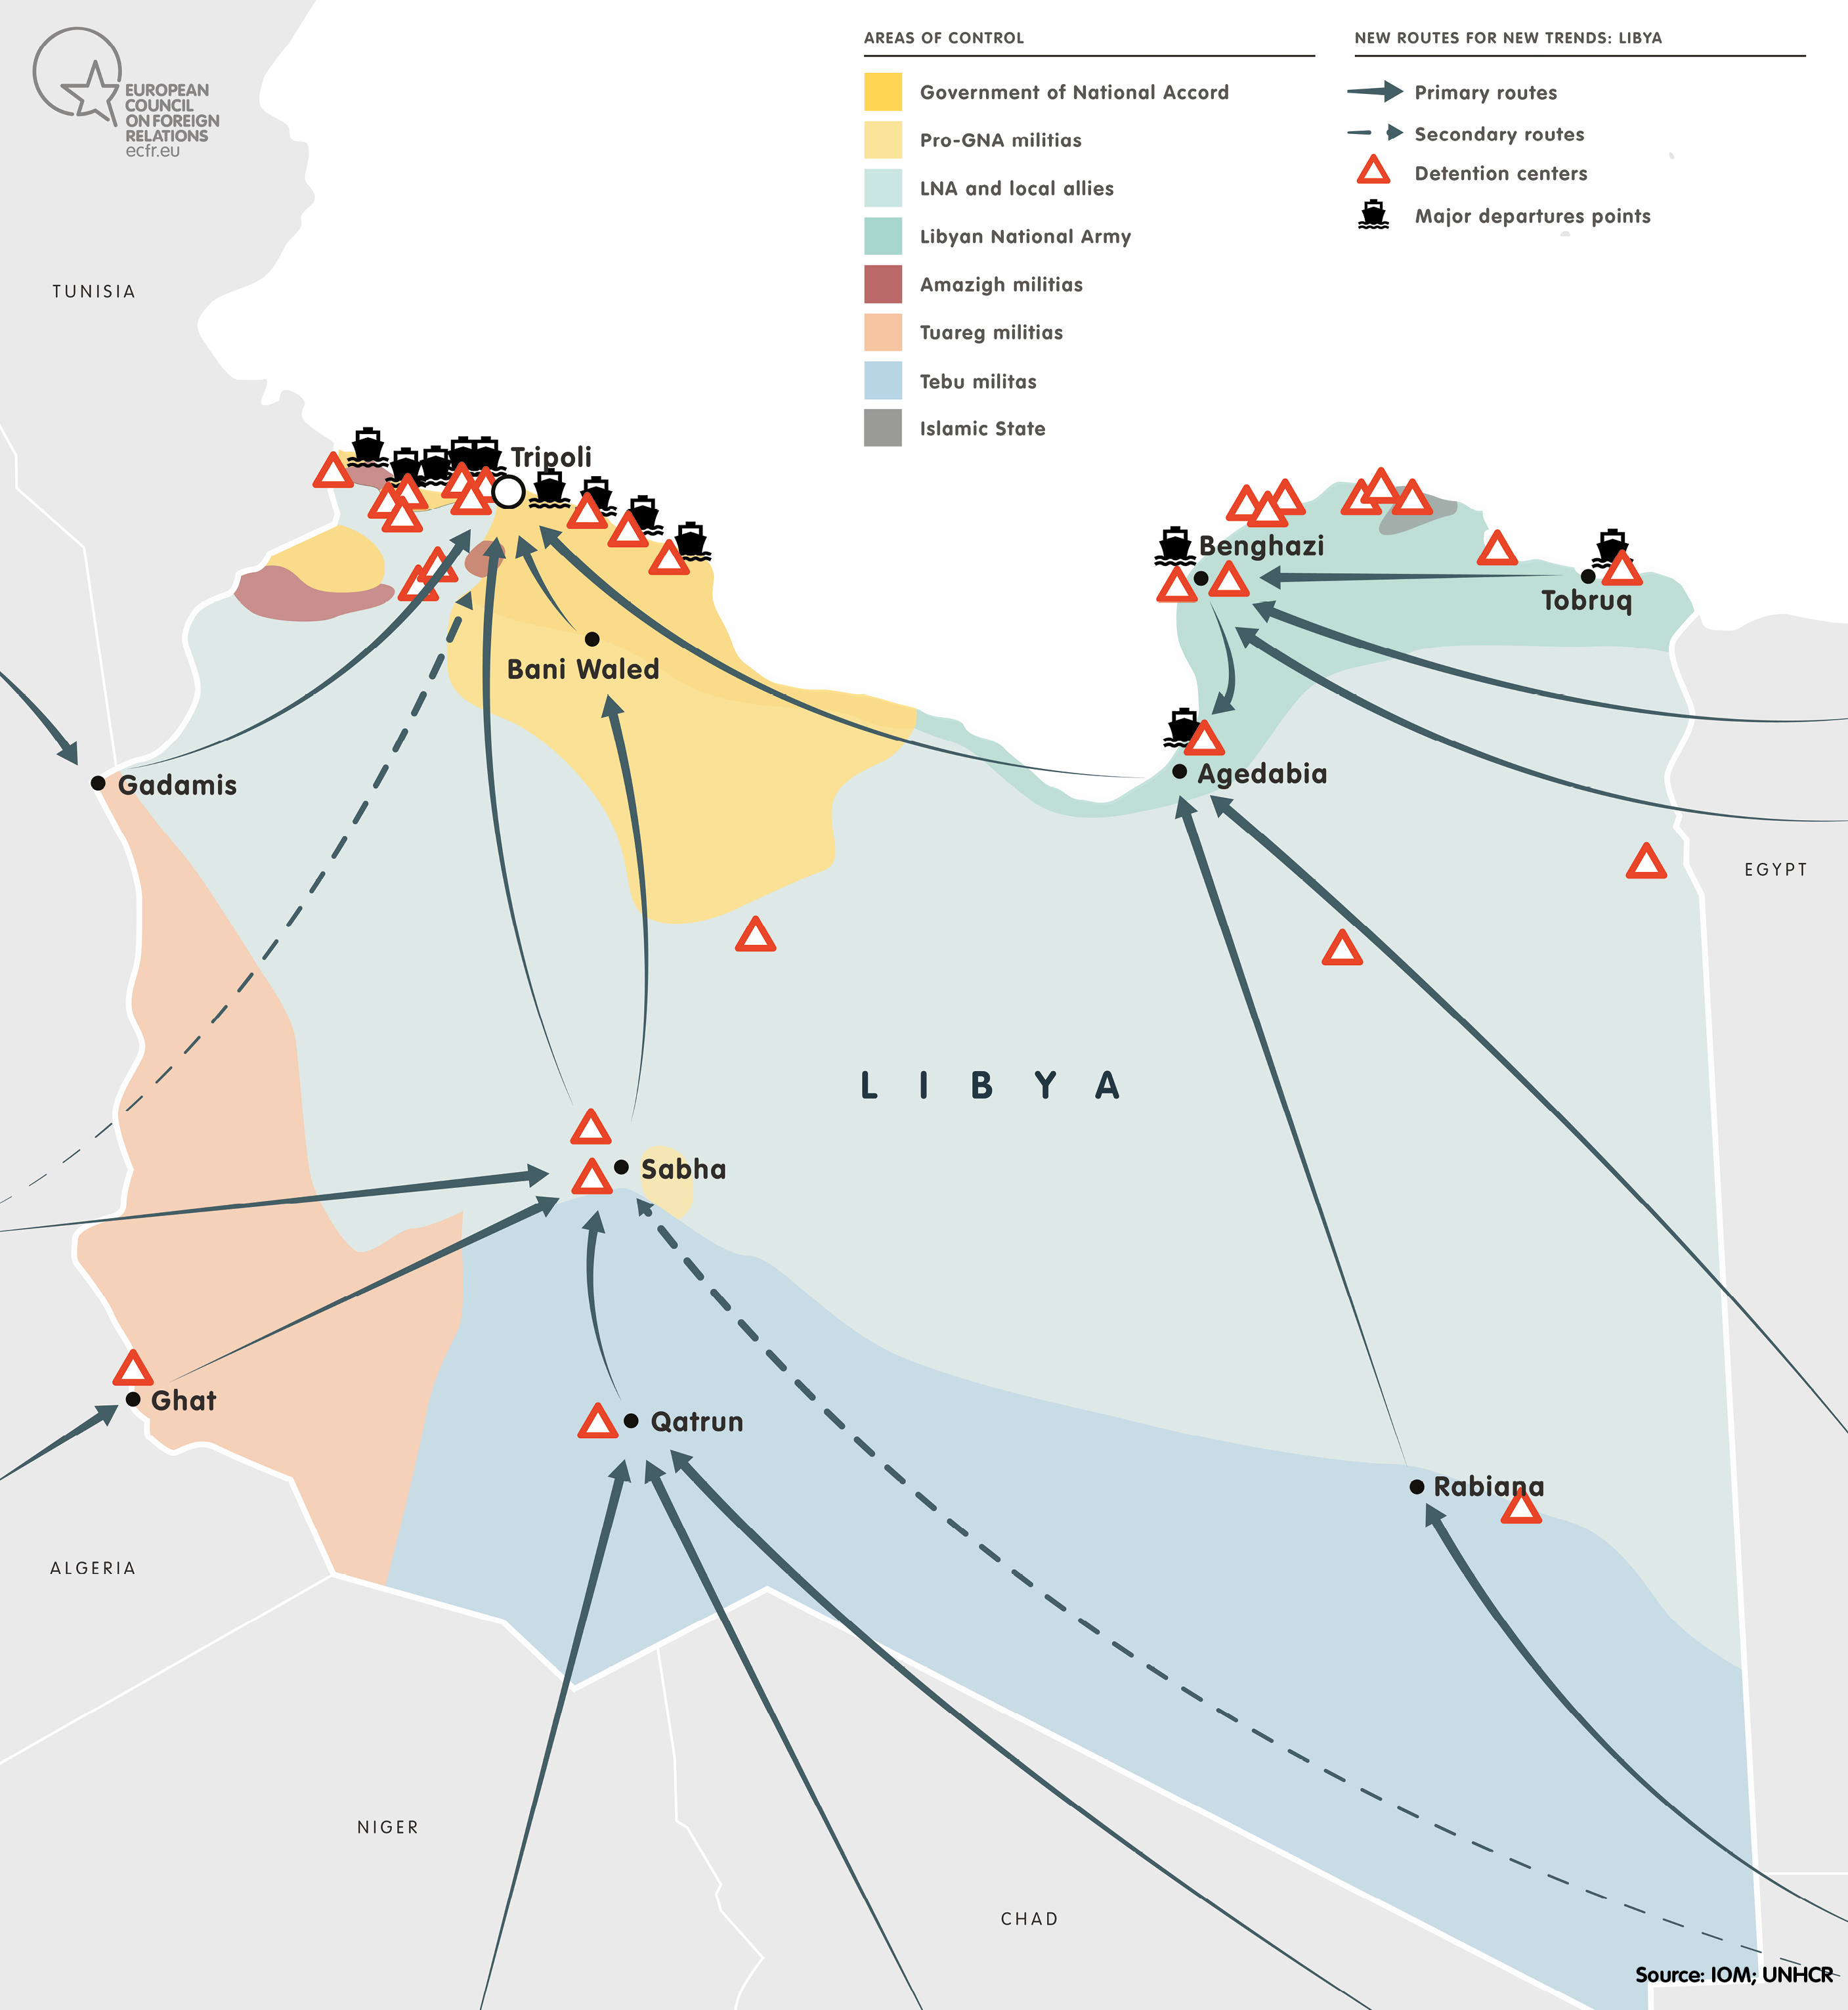 Libya's' internal migration routes map